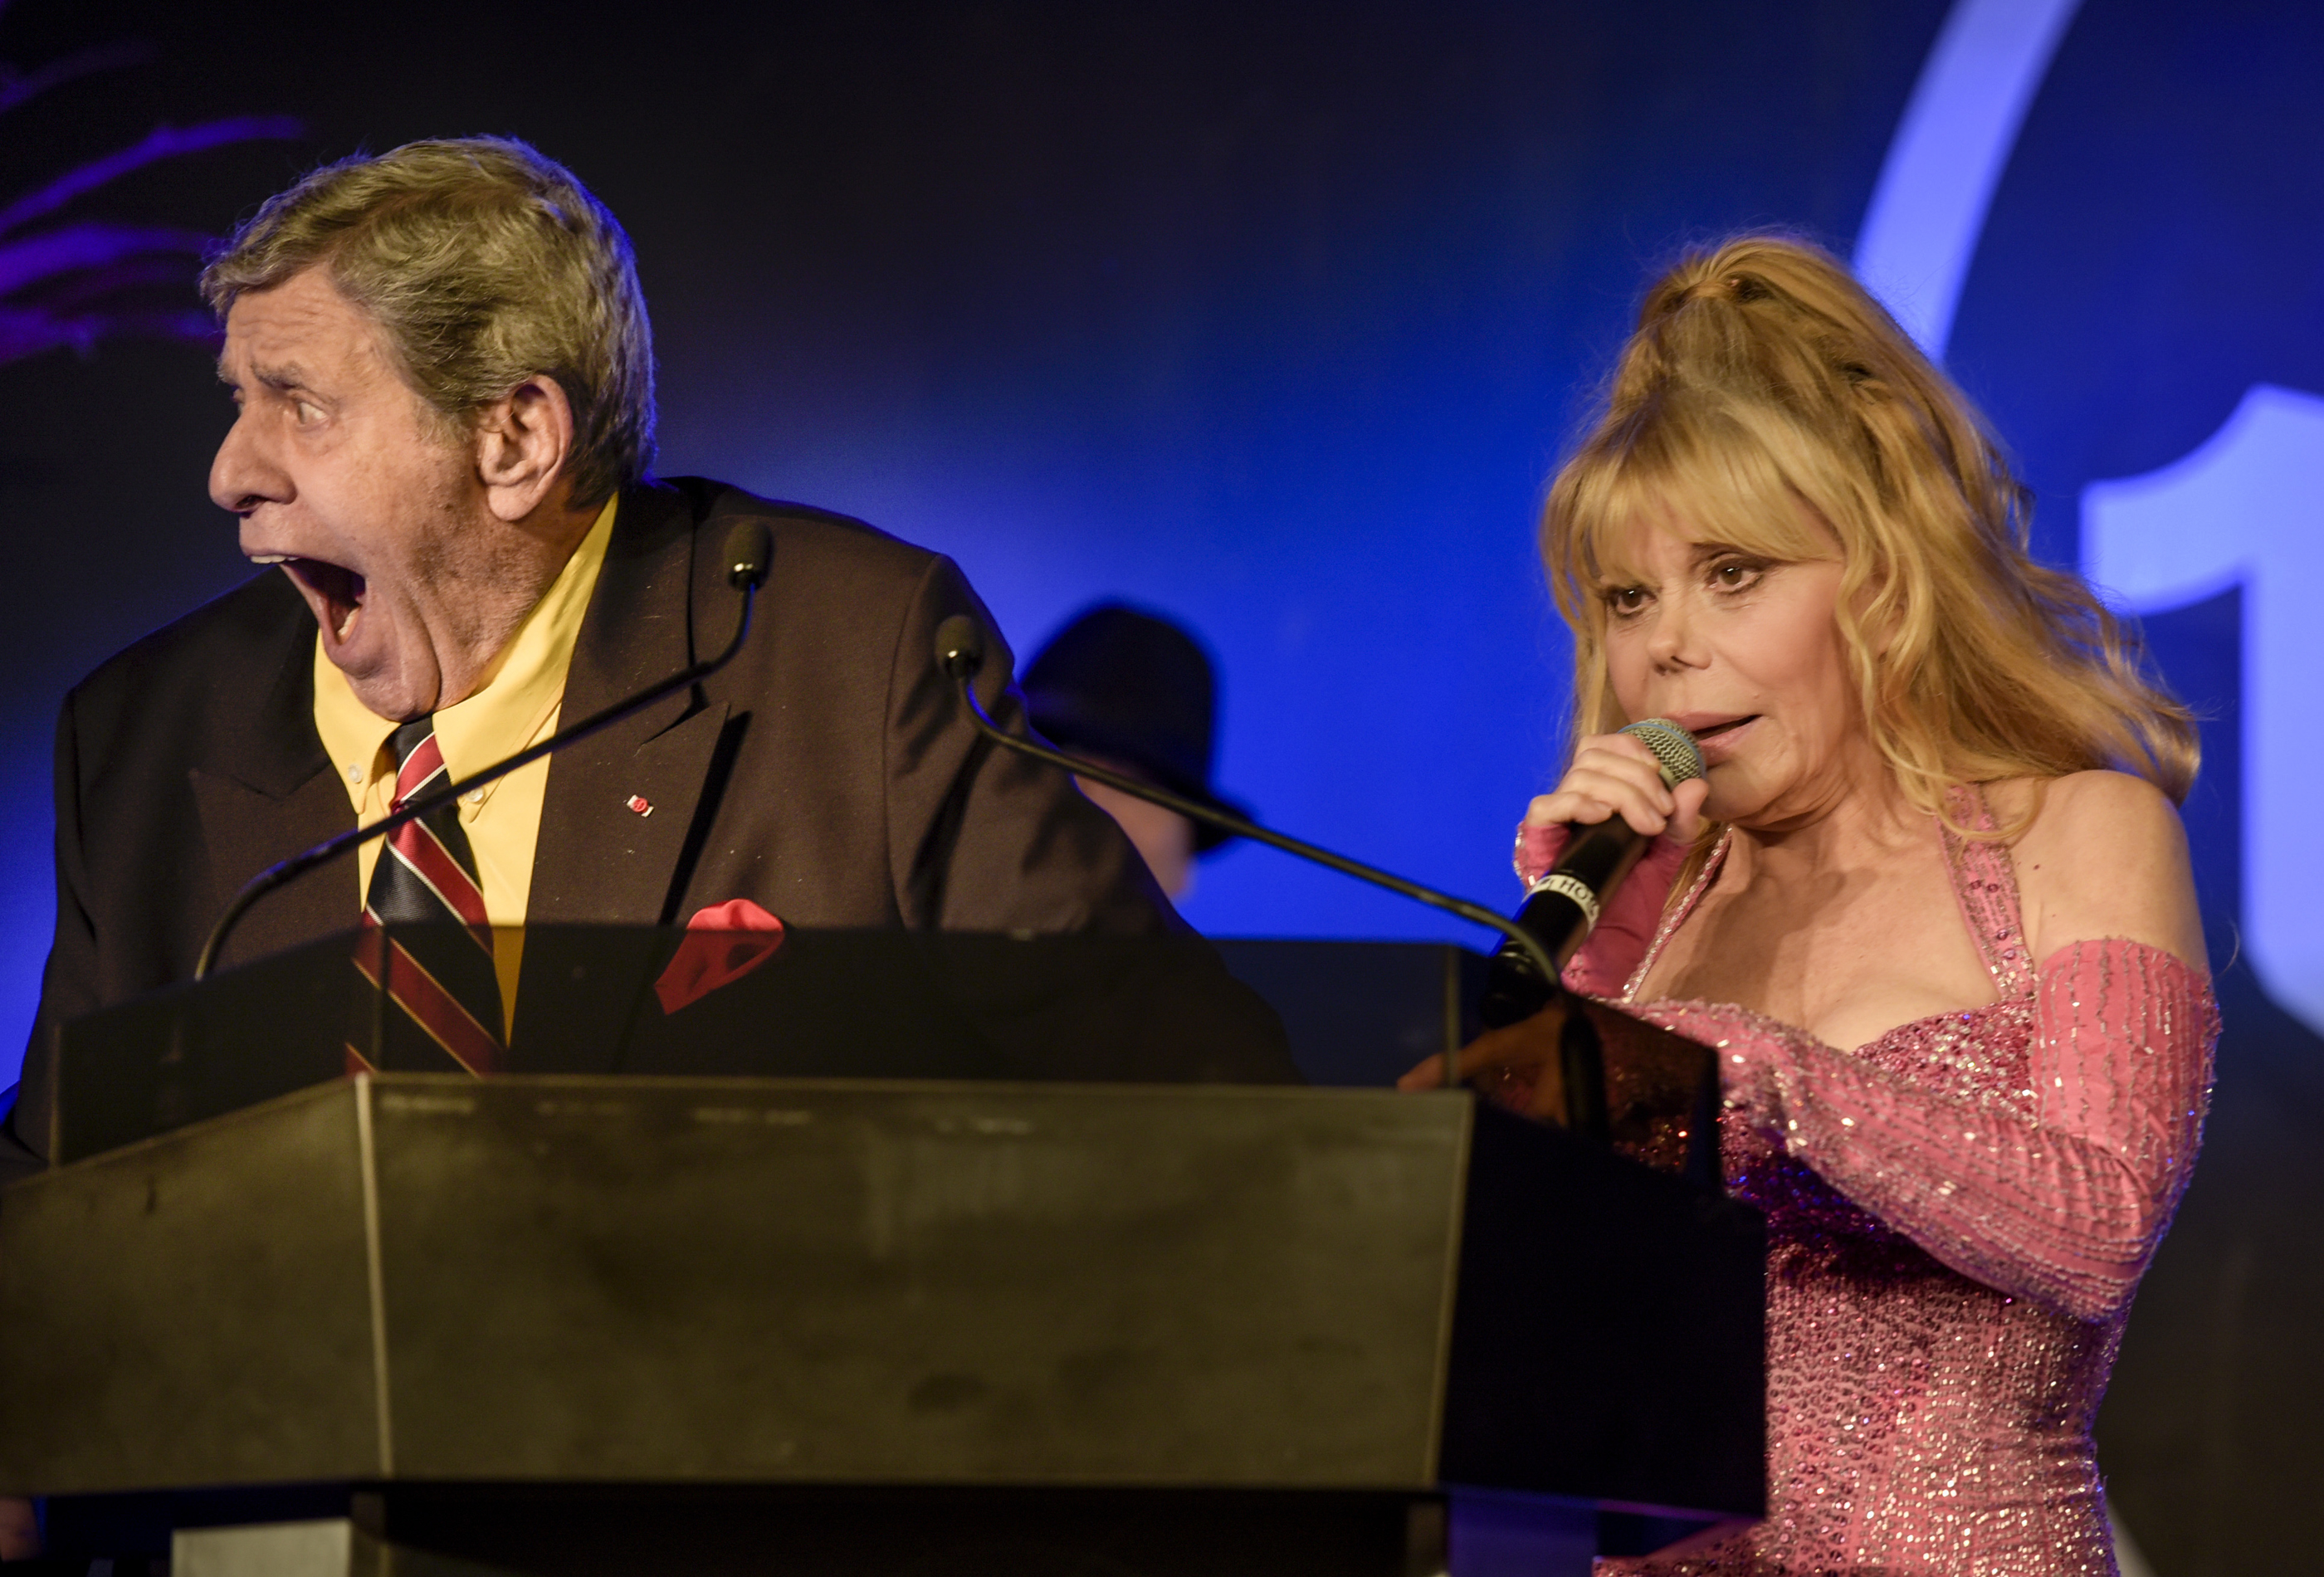 Casino Entertainment Legend Award winner Jerry Lewis, left, and Charo joke with the crowd at the 2015 Casino Entertainment Awards presented by the Global Gaming Expo at Vinyl in the Hard Rock Hotel & Casino in Las Vegas on Wednesday, Sept. 30, 2015. CREDIT: Mark Damon/Las Vegas News Bureau